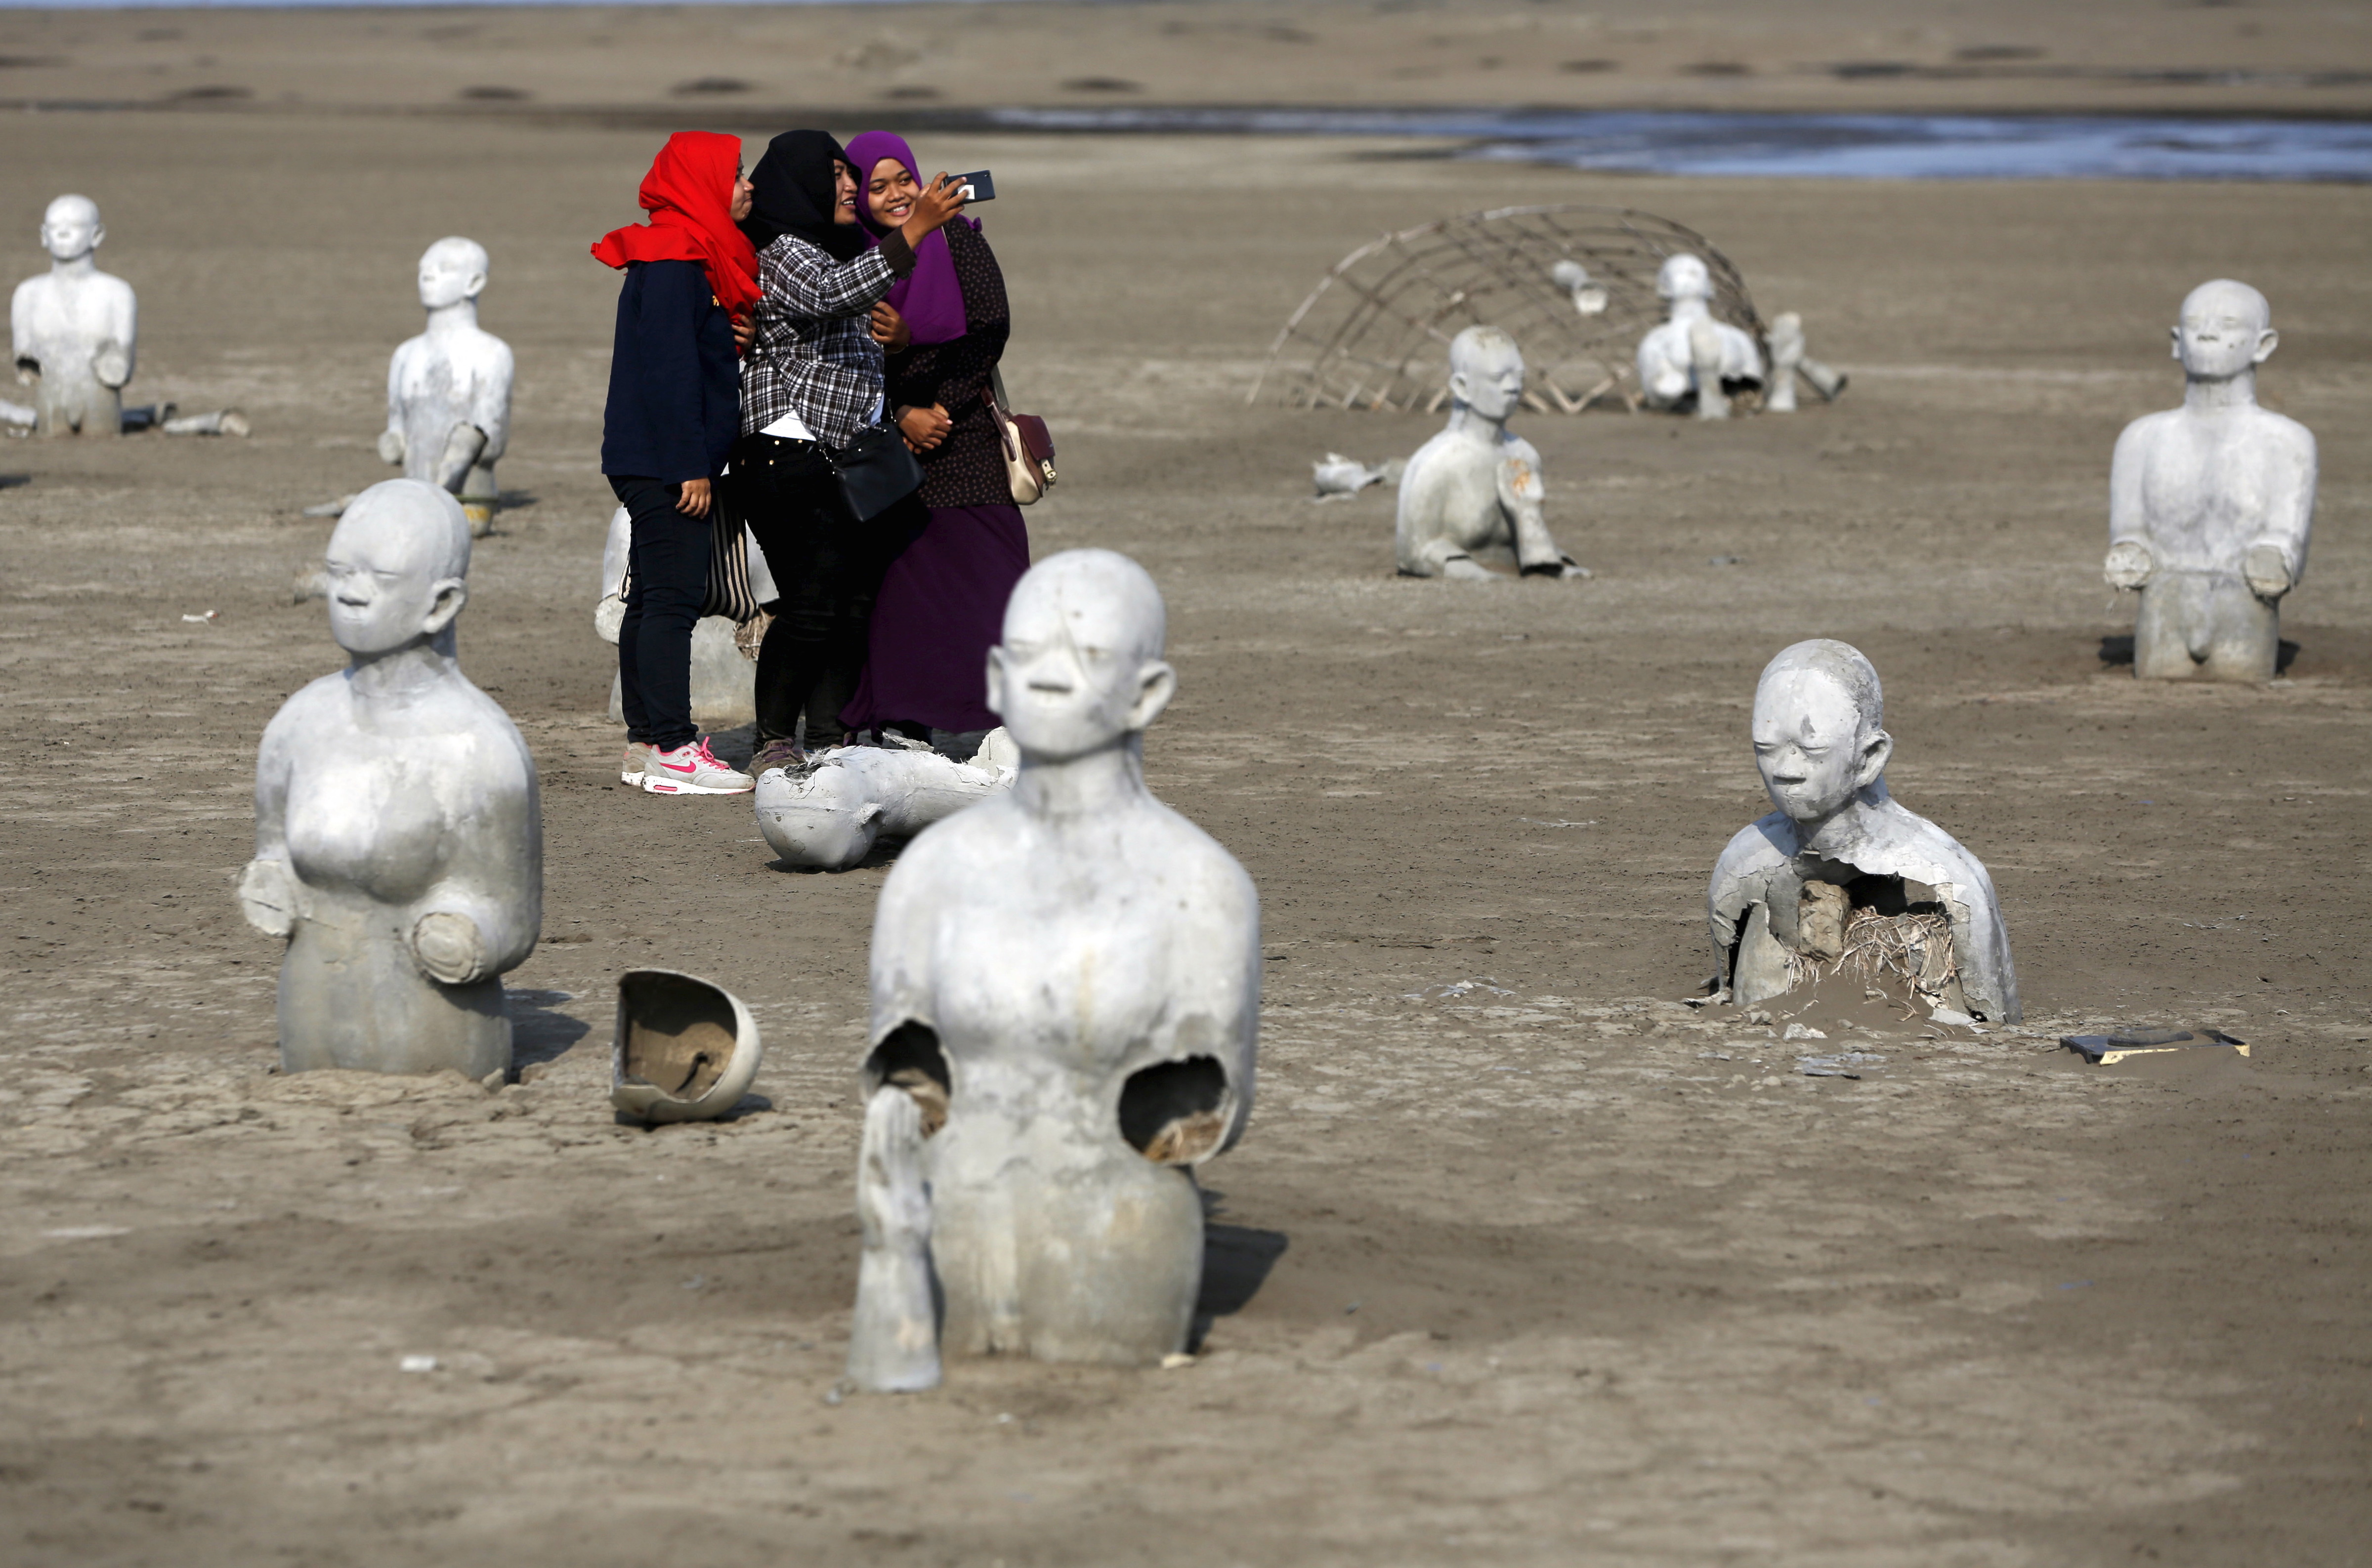 110 statues were made for the Sidoarjo site by Indonesian artist Dadang Krisianto.